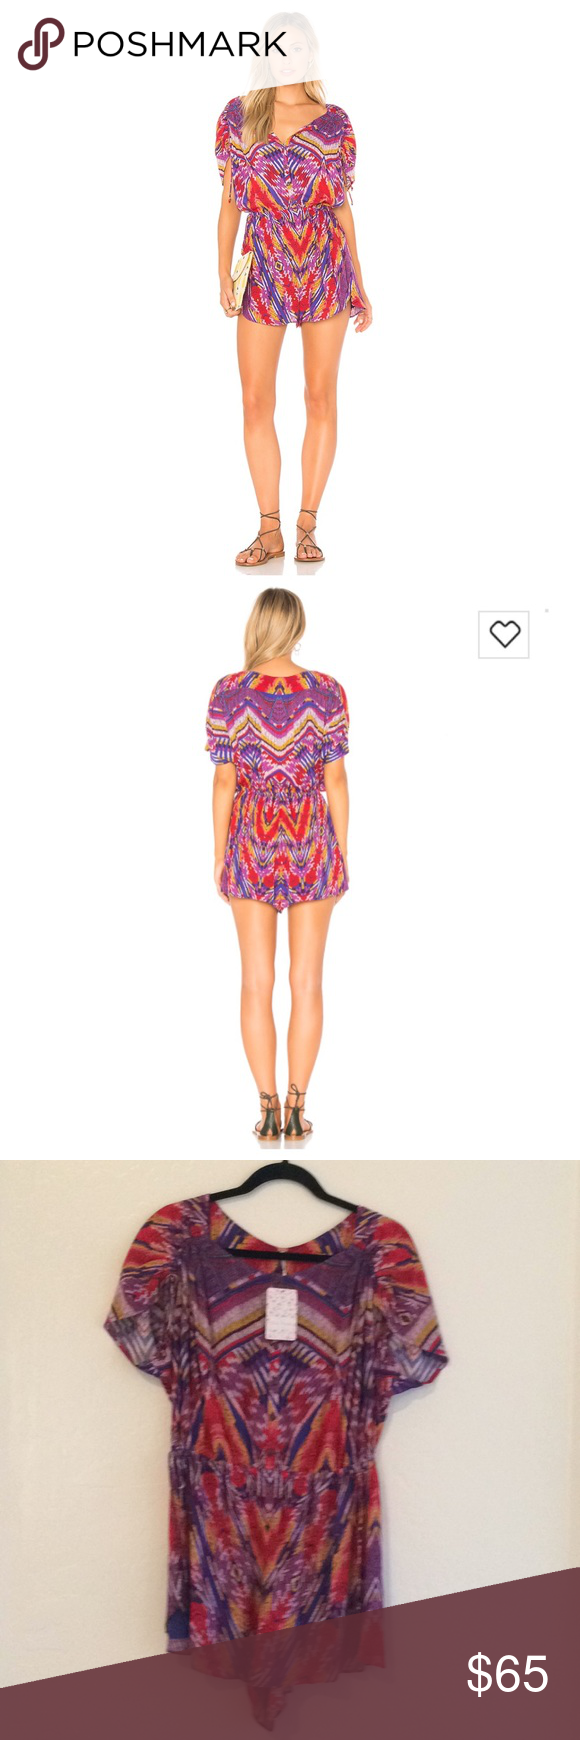 50d4cd1526d9 Free People Dream All Night Romper Free People Dream all Night Romper.  Front button closure. Shirred shoulders with tie sleeves.